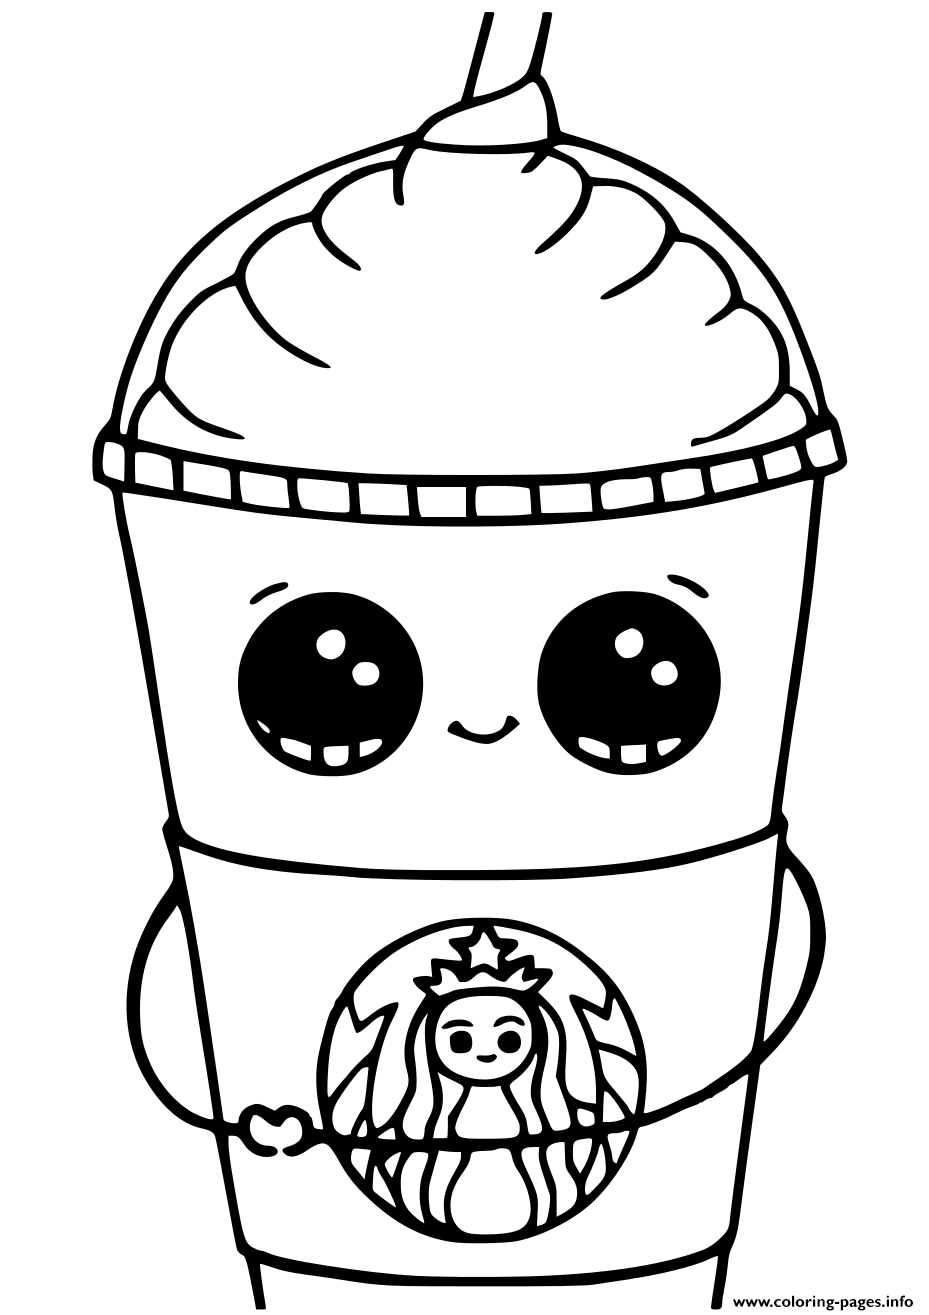 starbucks unicorn coloring pages starbucks frappuccino drawing at getdrawings free download pages coloring unicorn starbucks